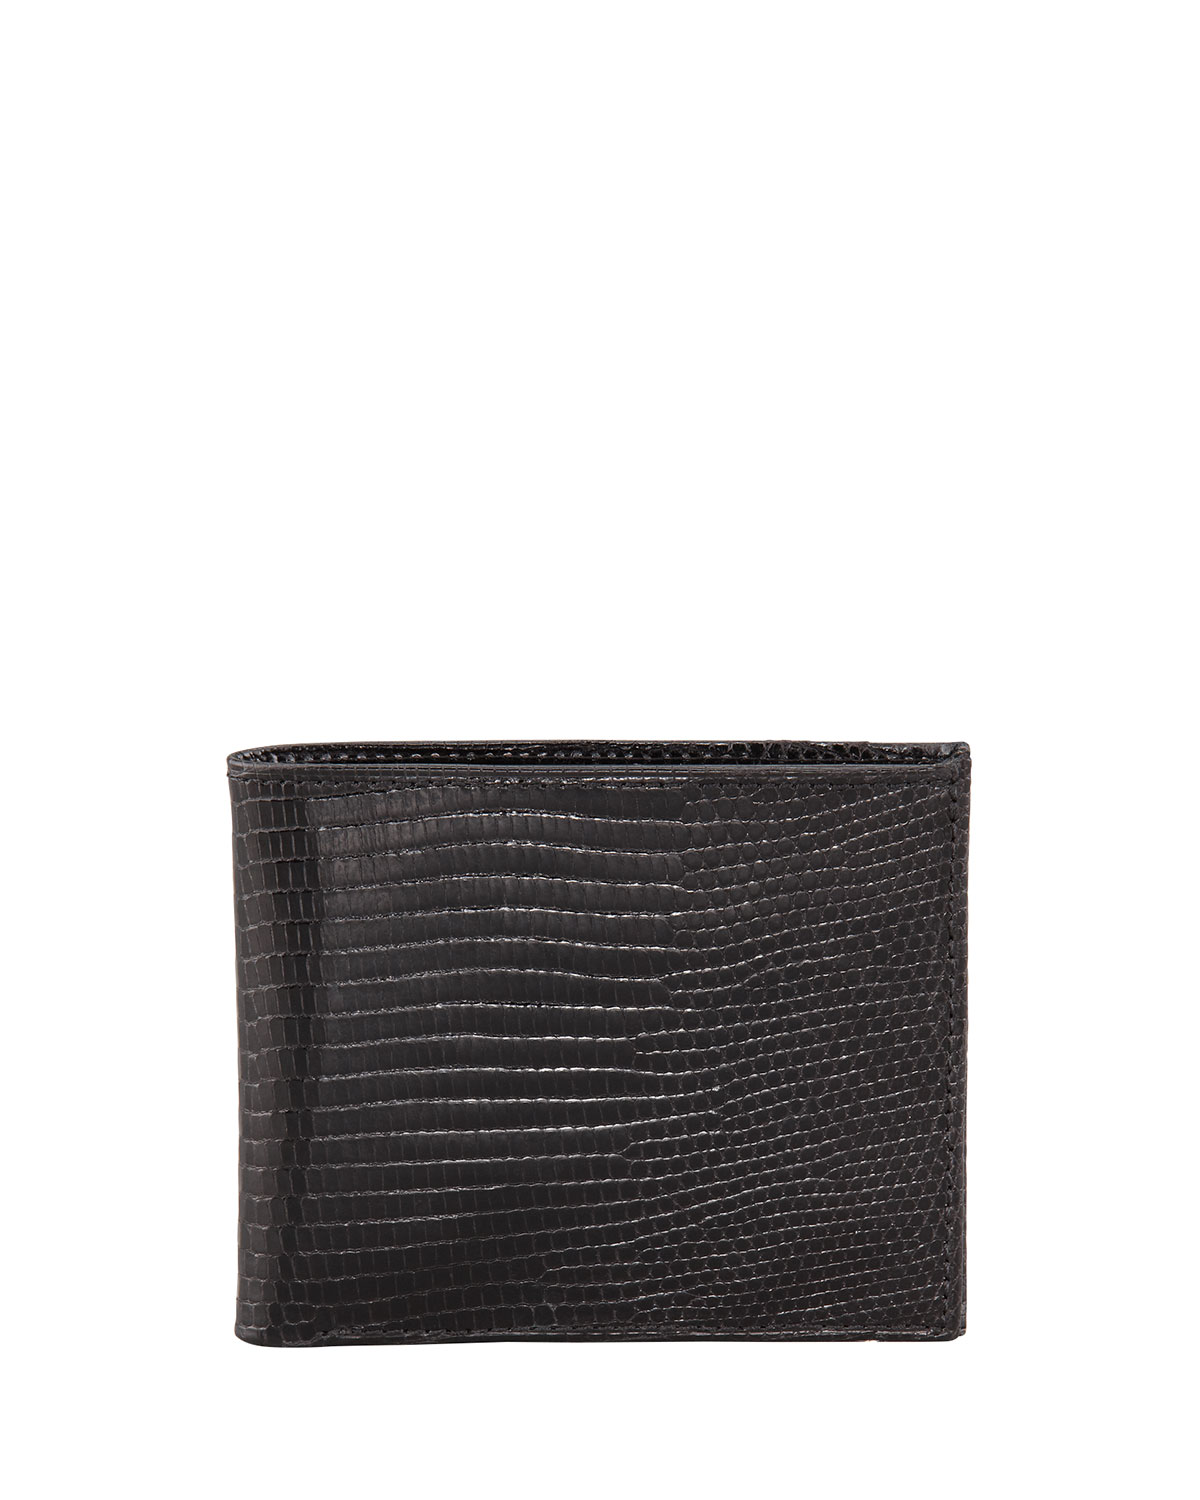 71cf074aa78e Neiman Marcus Wallets - Best Photo Wallet Justiceforkenny.Org